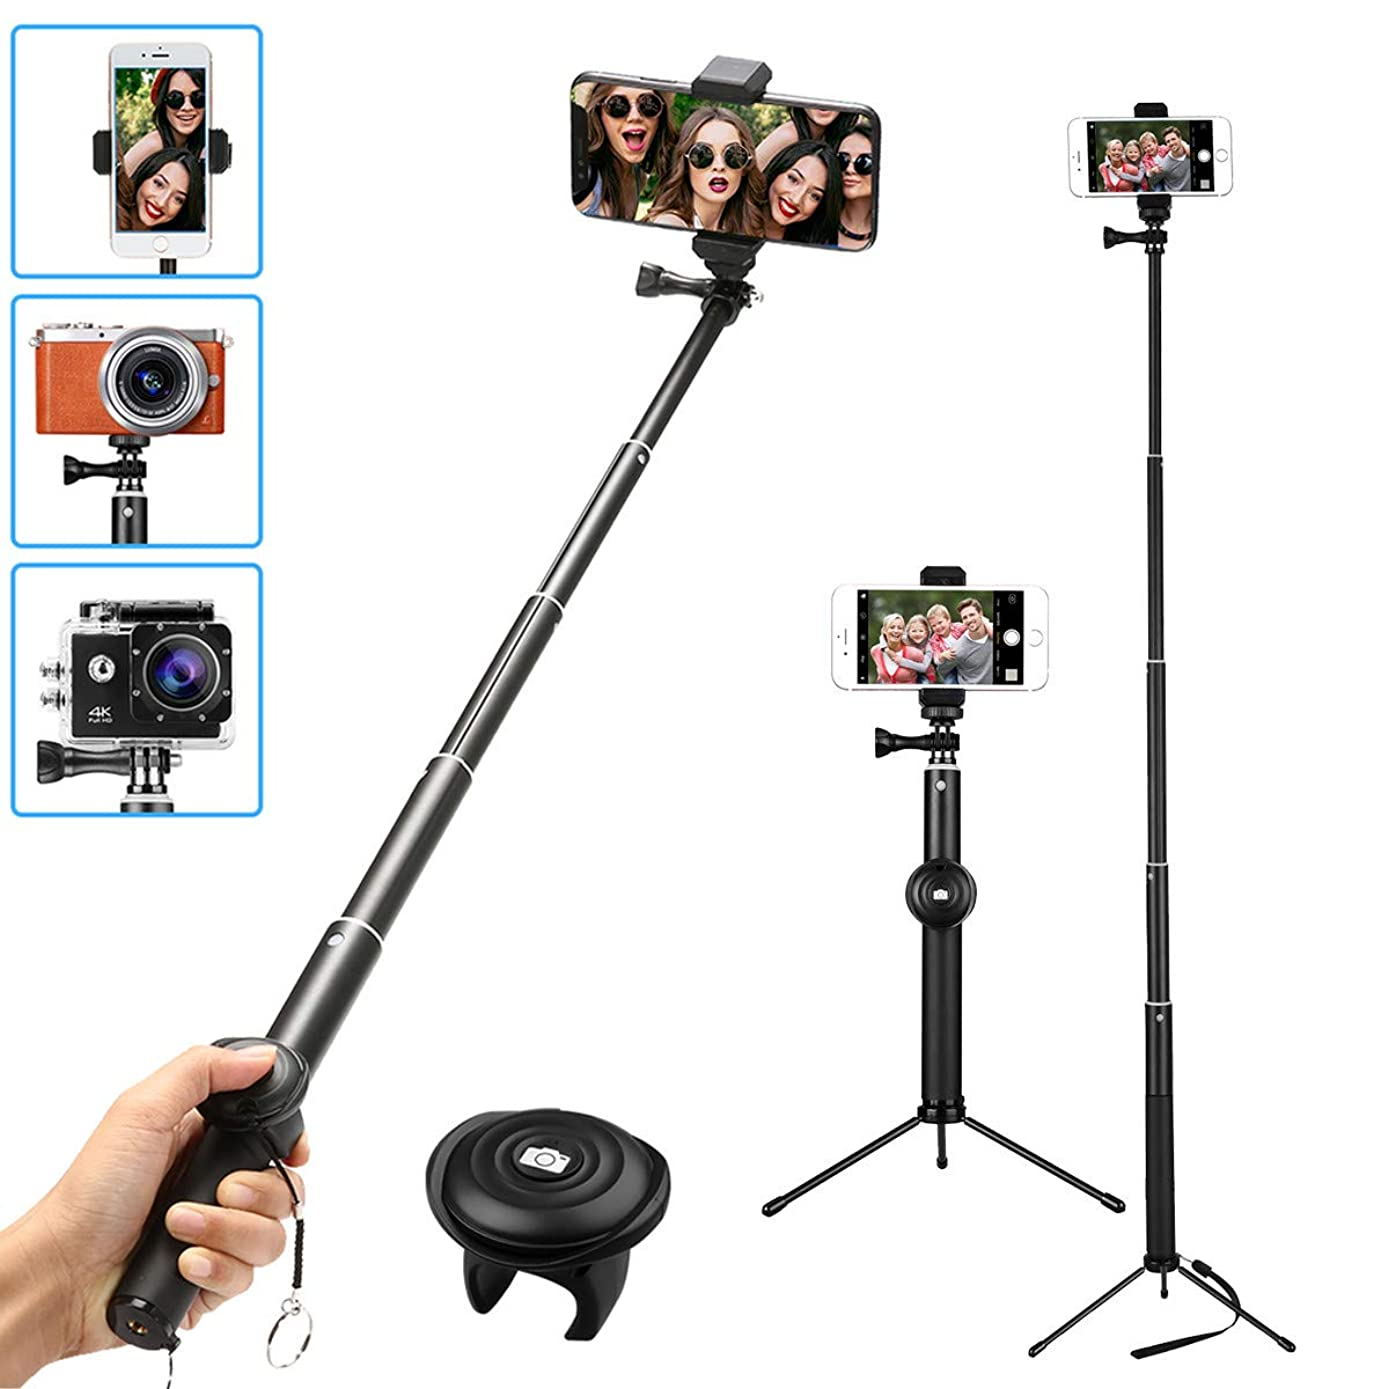 MWAY Selfie Stick 2 in 1 Portable Bluetooth Phone Tripod Camera Stand with Remote Control and Universal Phone Holder, Extendable Monopod for iPhone X/8/7/6, Galaxy Note 8/S8, Gopros, Mini SLR Camera